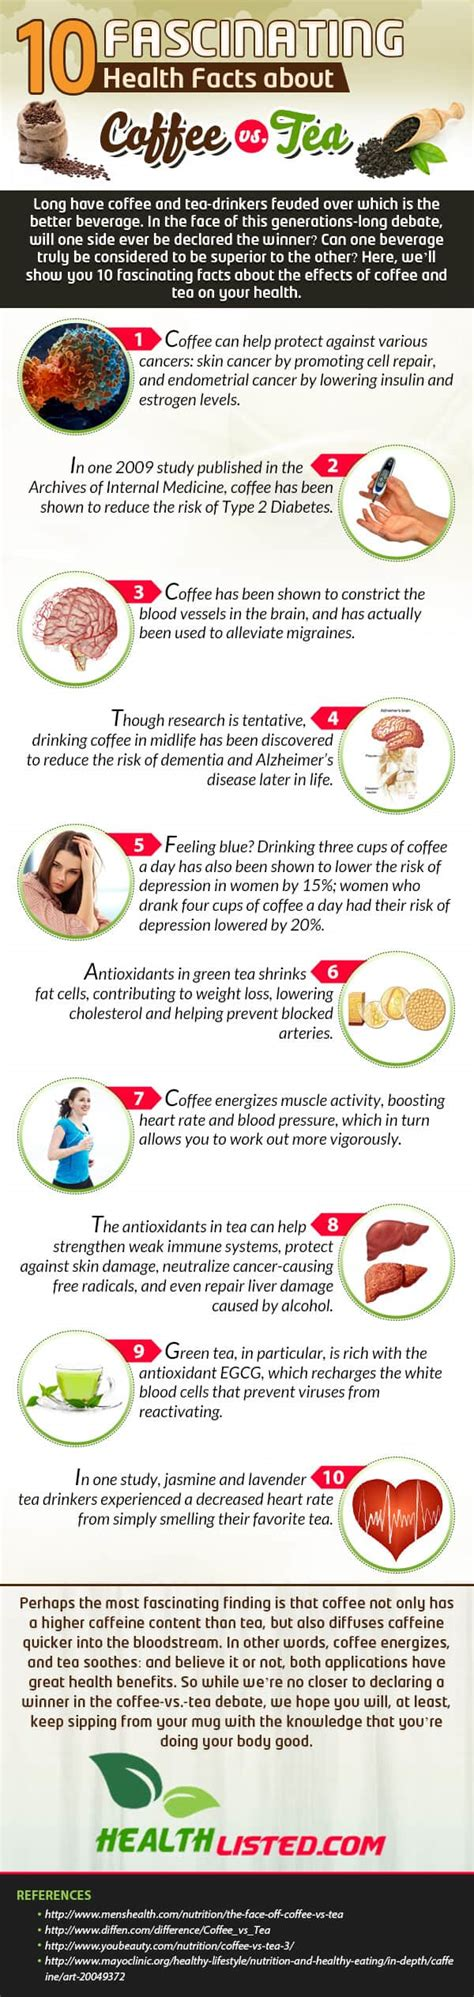 History of tea vs coffee both coffee and tea have legendary pasts, including wars that have. Fascinating Facts about Coffee vs. Tea Infographic - ecogreenlove